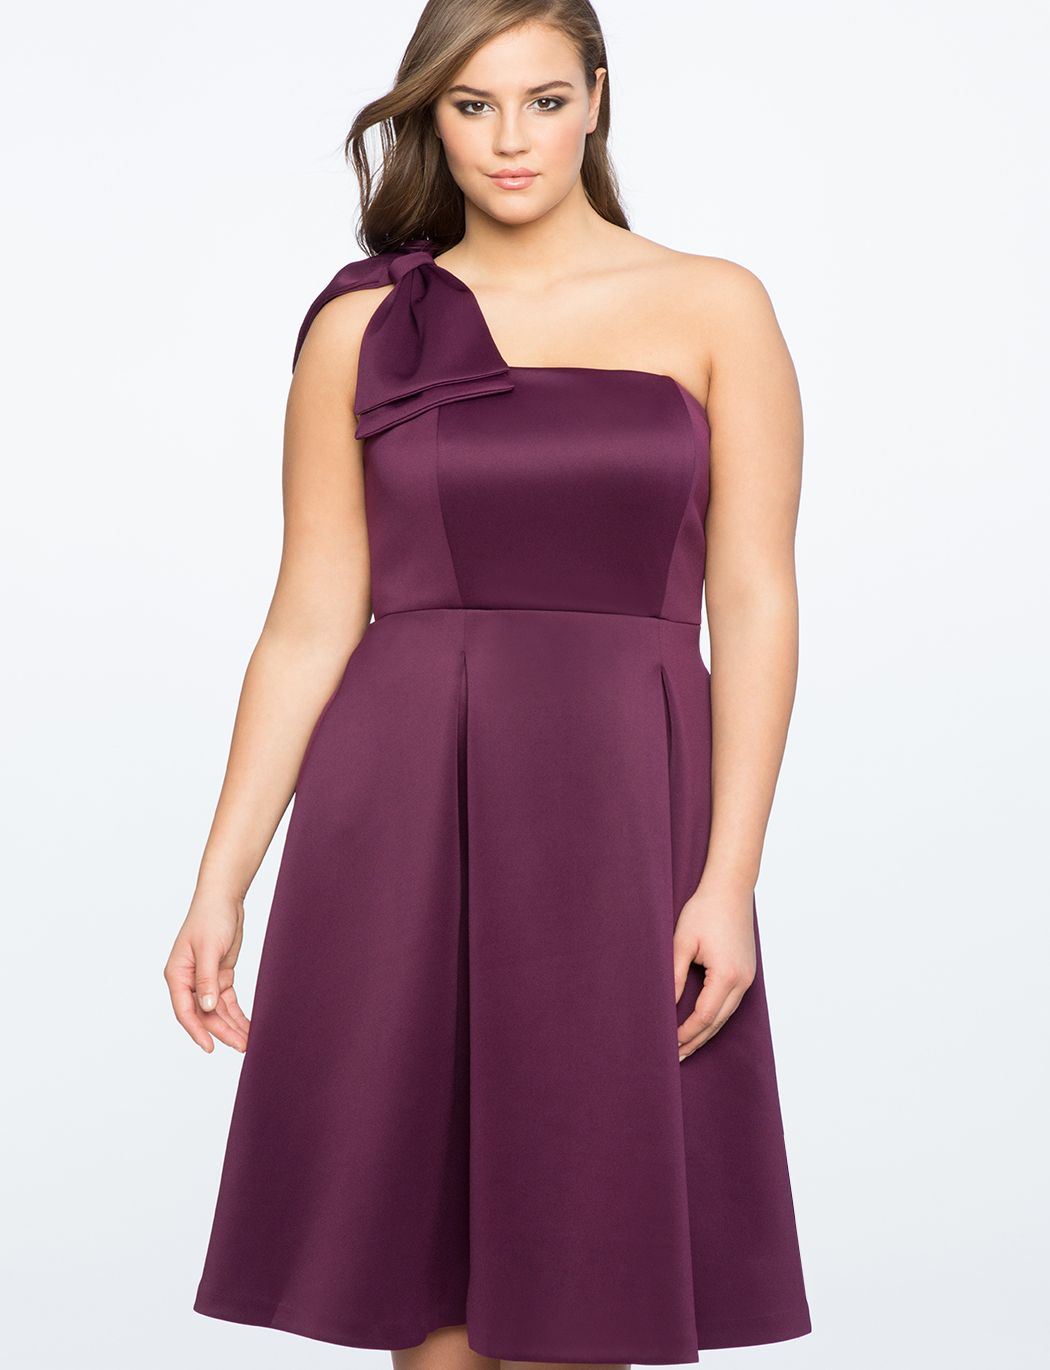 One Shoulder Fit & Flare Dress with Bow Detail